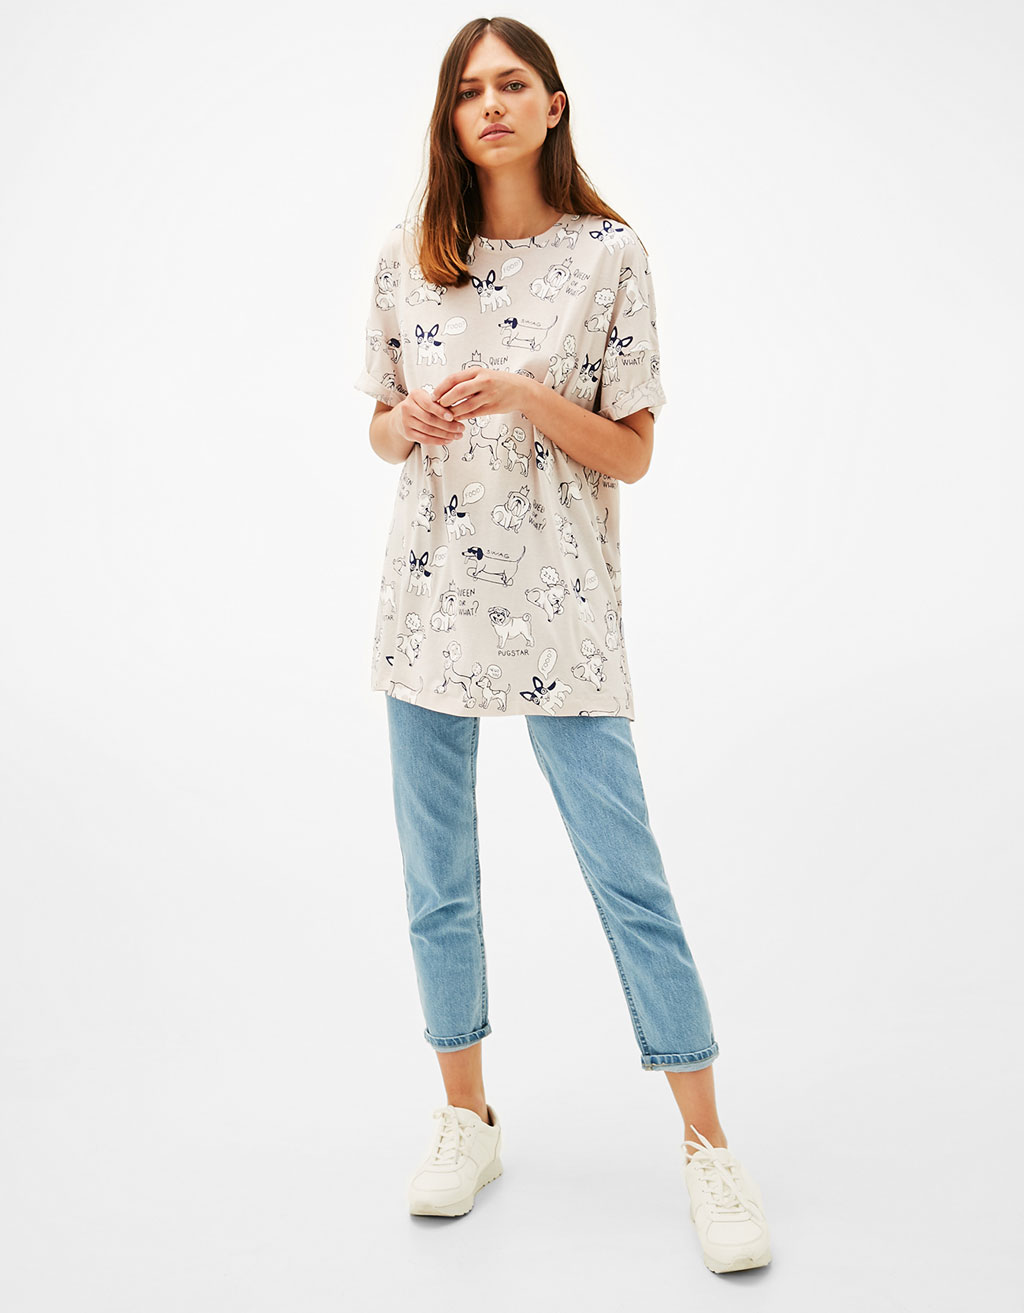 Oversized printed T-shirt